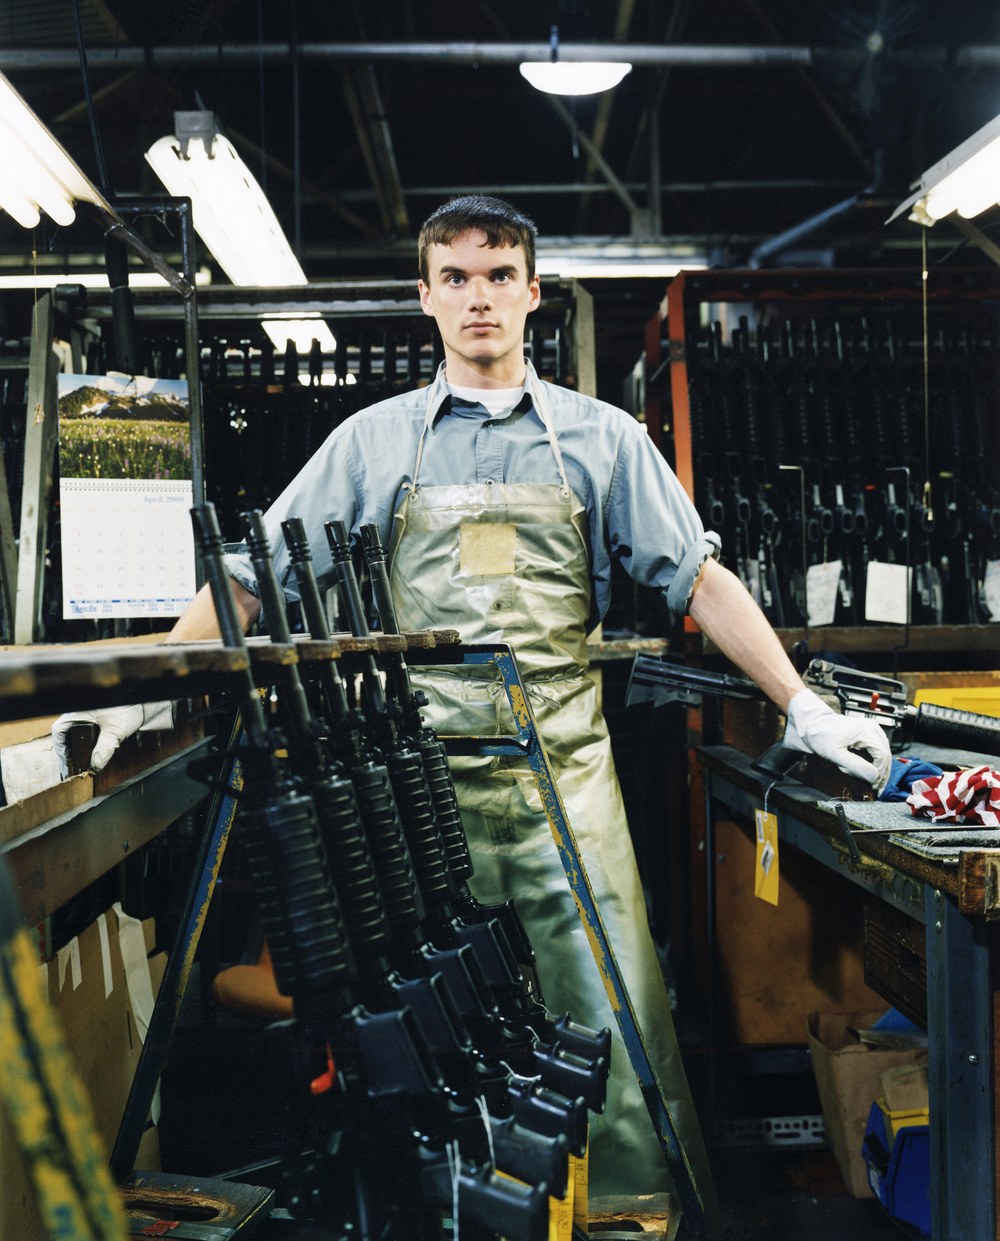 Colt gun factory worker - Hartford, CT